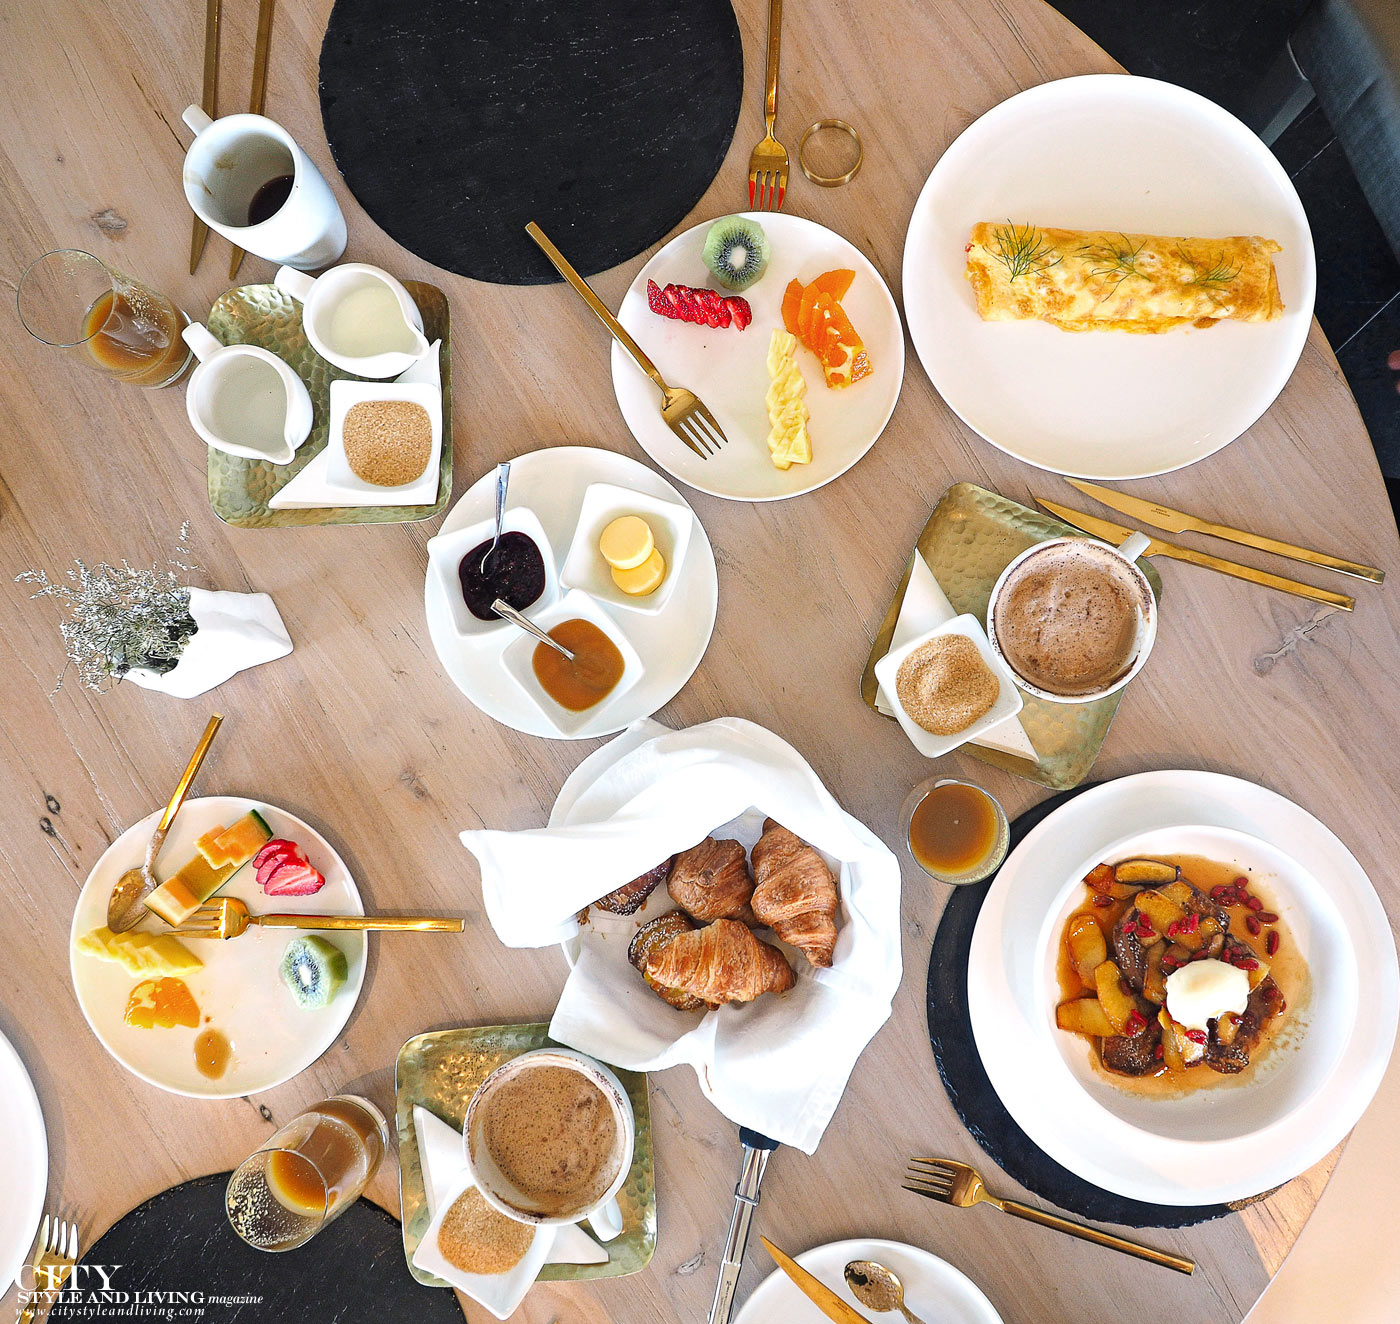 City Style and Living Magazine Luxury Hotel Kinloch Club New Zealand French Breakfast, fruit, pastry, coffee, juice